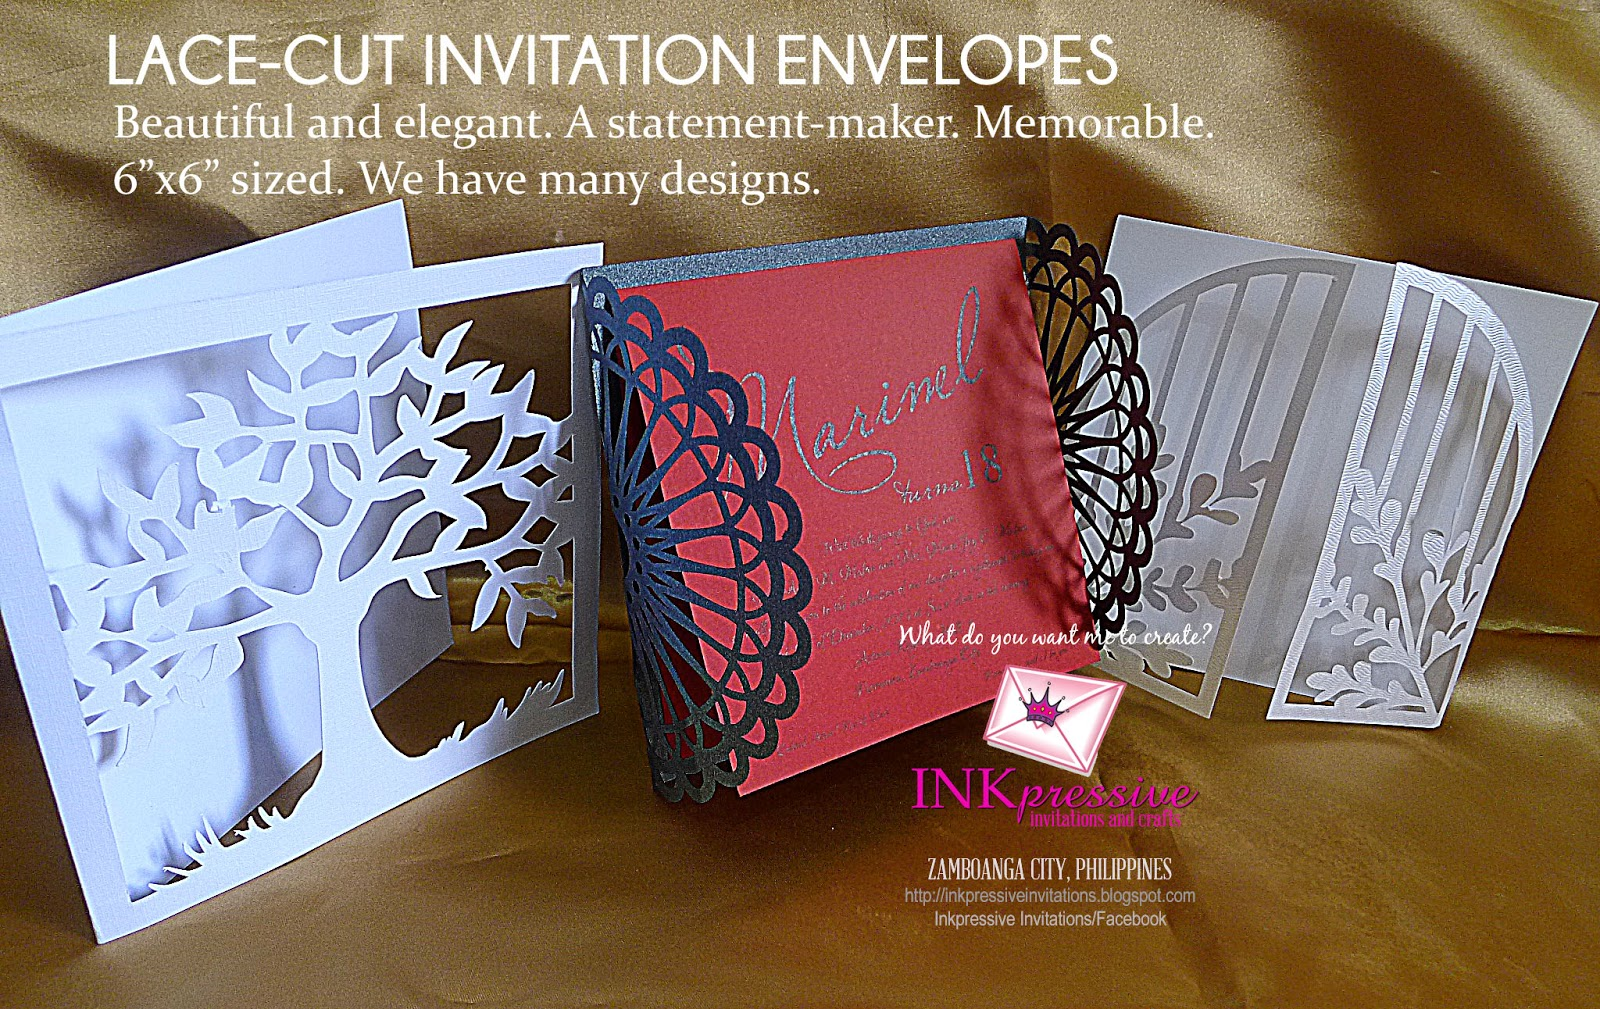 Intricate Cut Envelopes for Invitations | WEDDING INVITATIONS